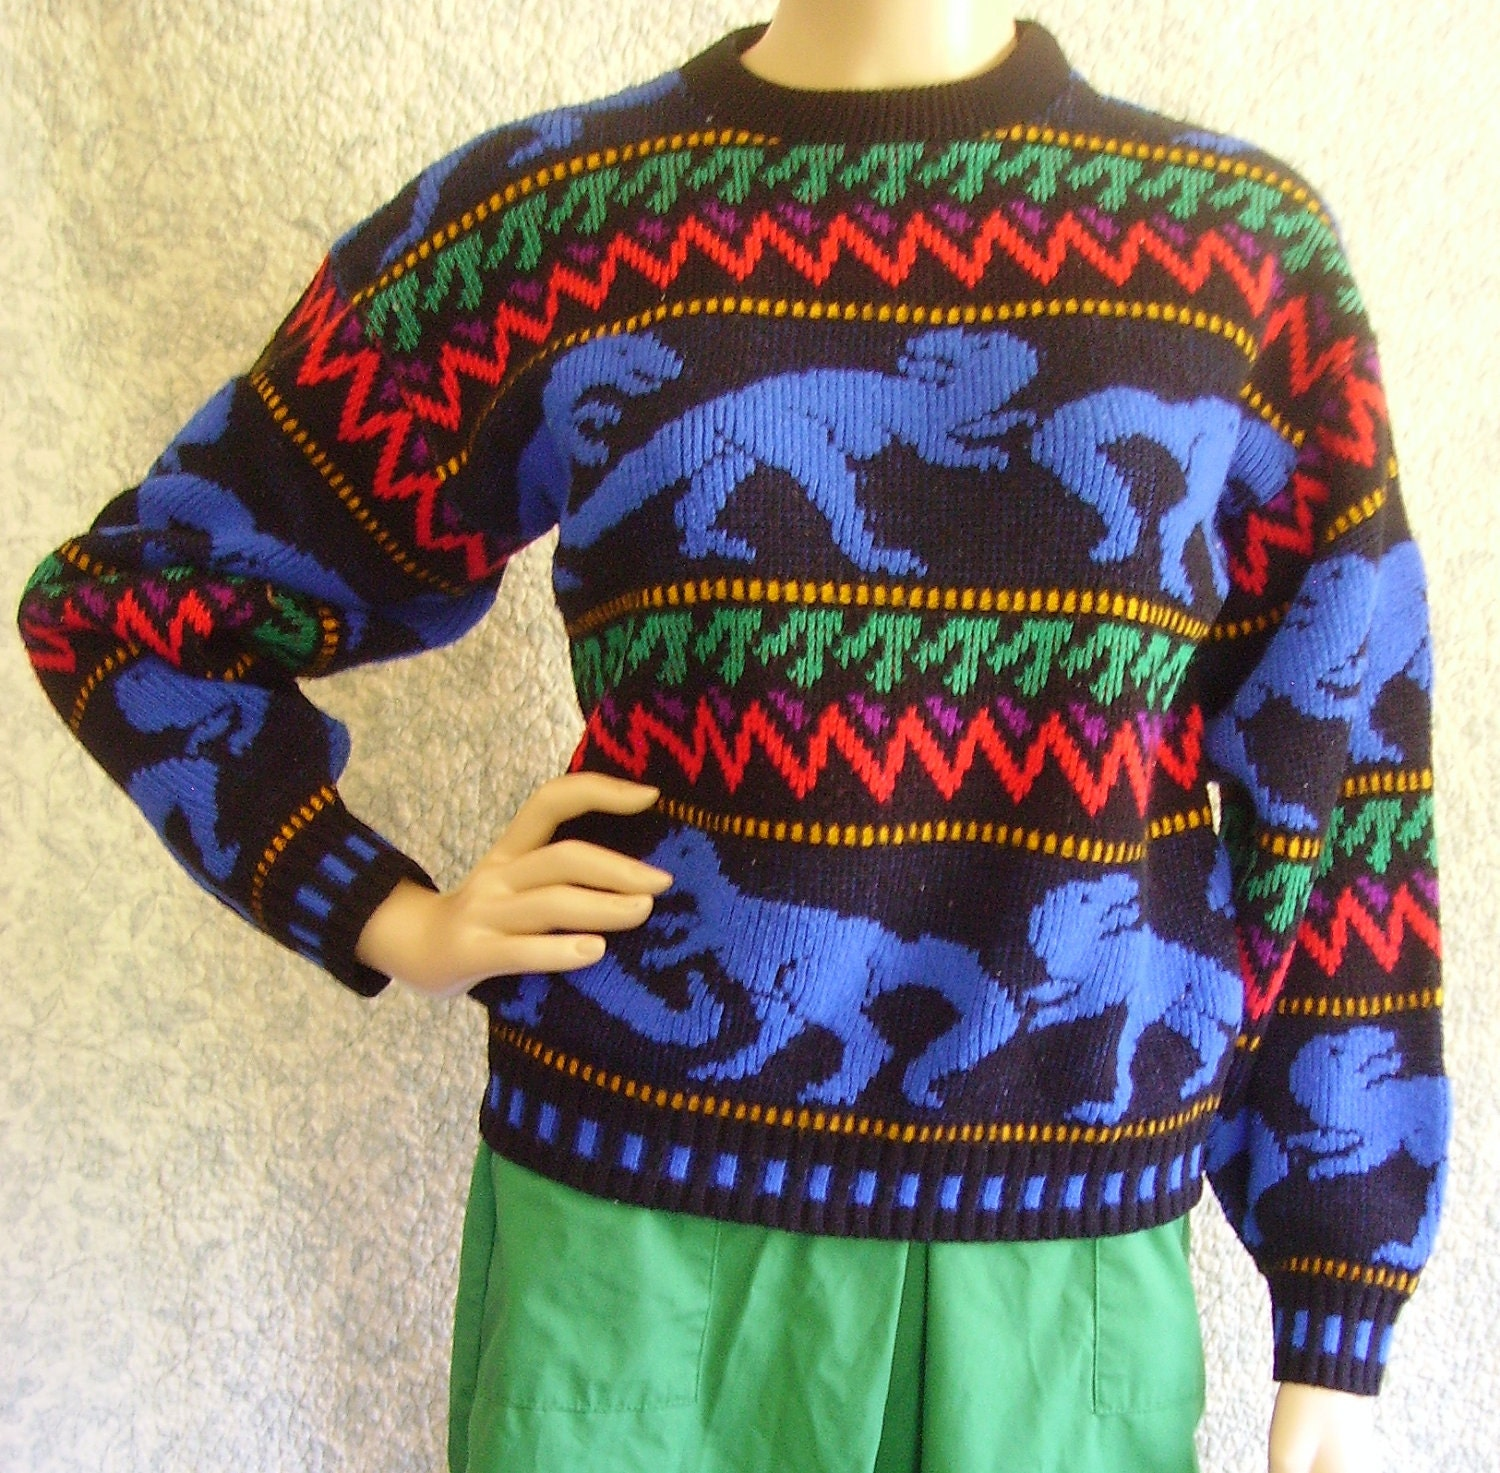 Vintage 80s Sweater Small / Vintage Sweater Small / Dinosaur Sweater / Retro Sweater / Small